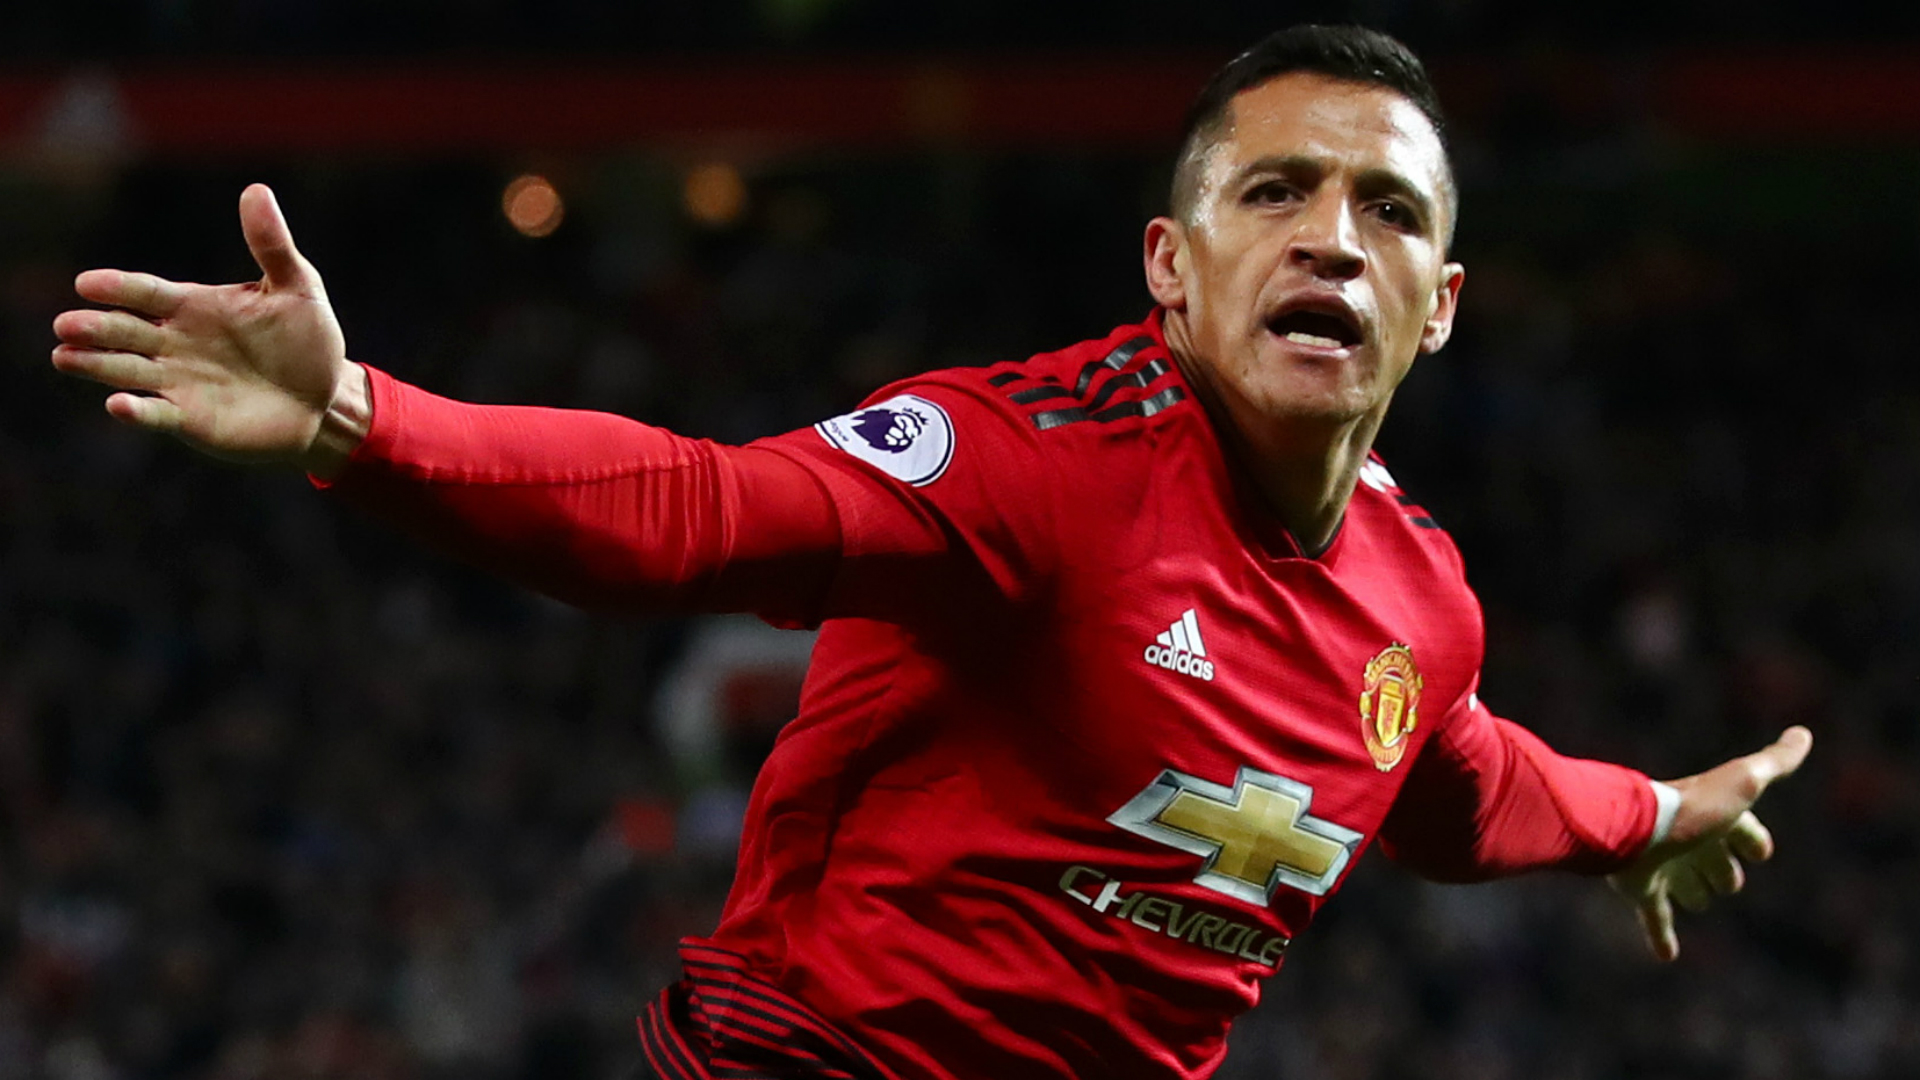 Ole Gunnar Solskjaer is confident Manchester United's Alexis Sanchez will soon be back to his best ahead of Sunday's trip to Tottenham.